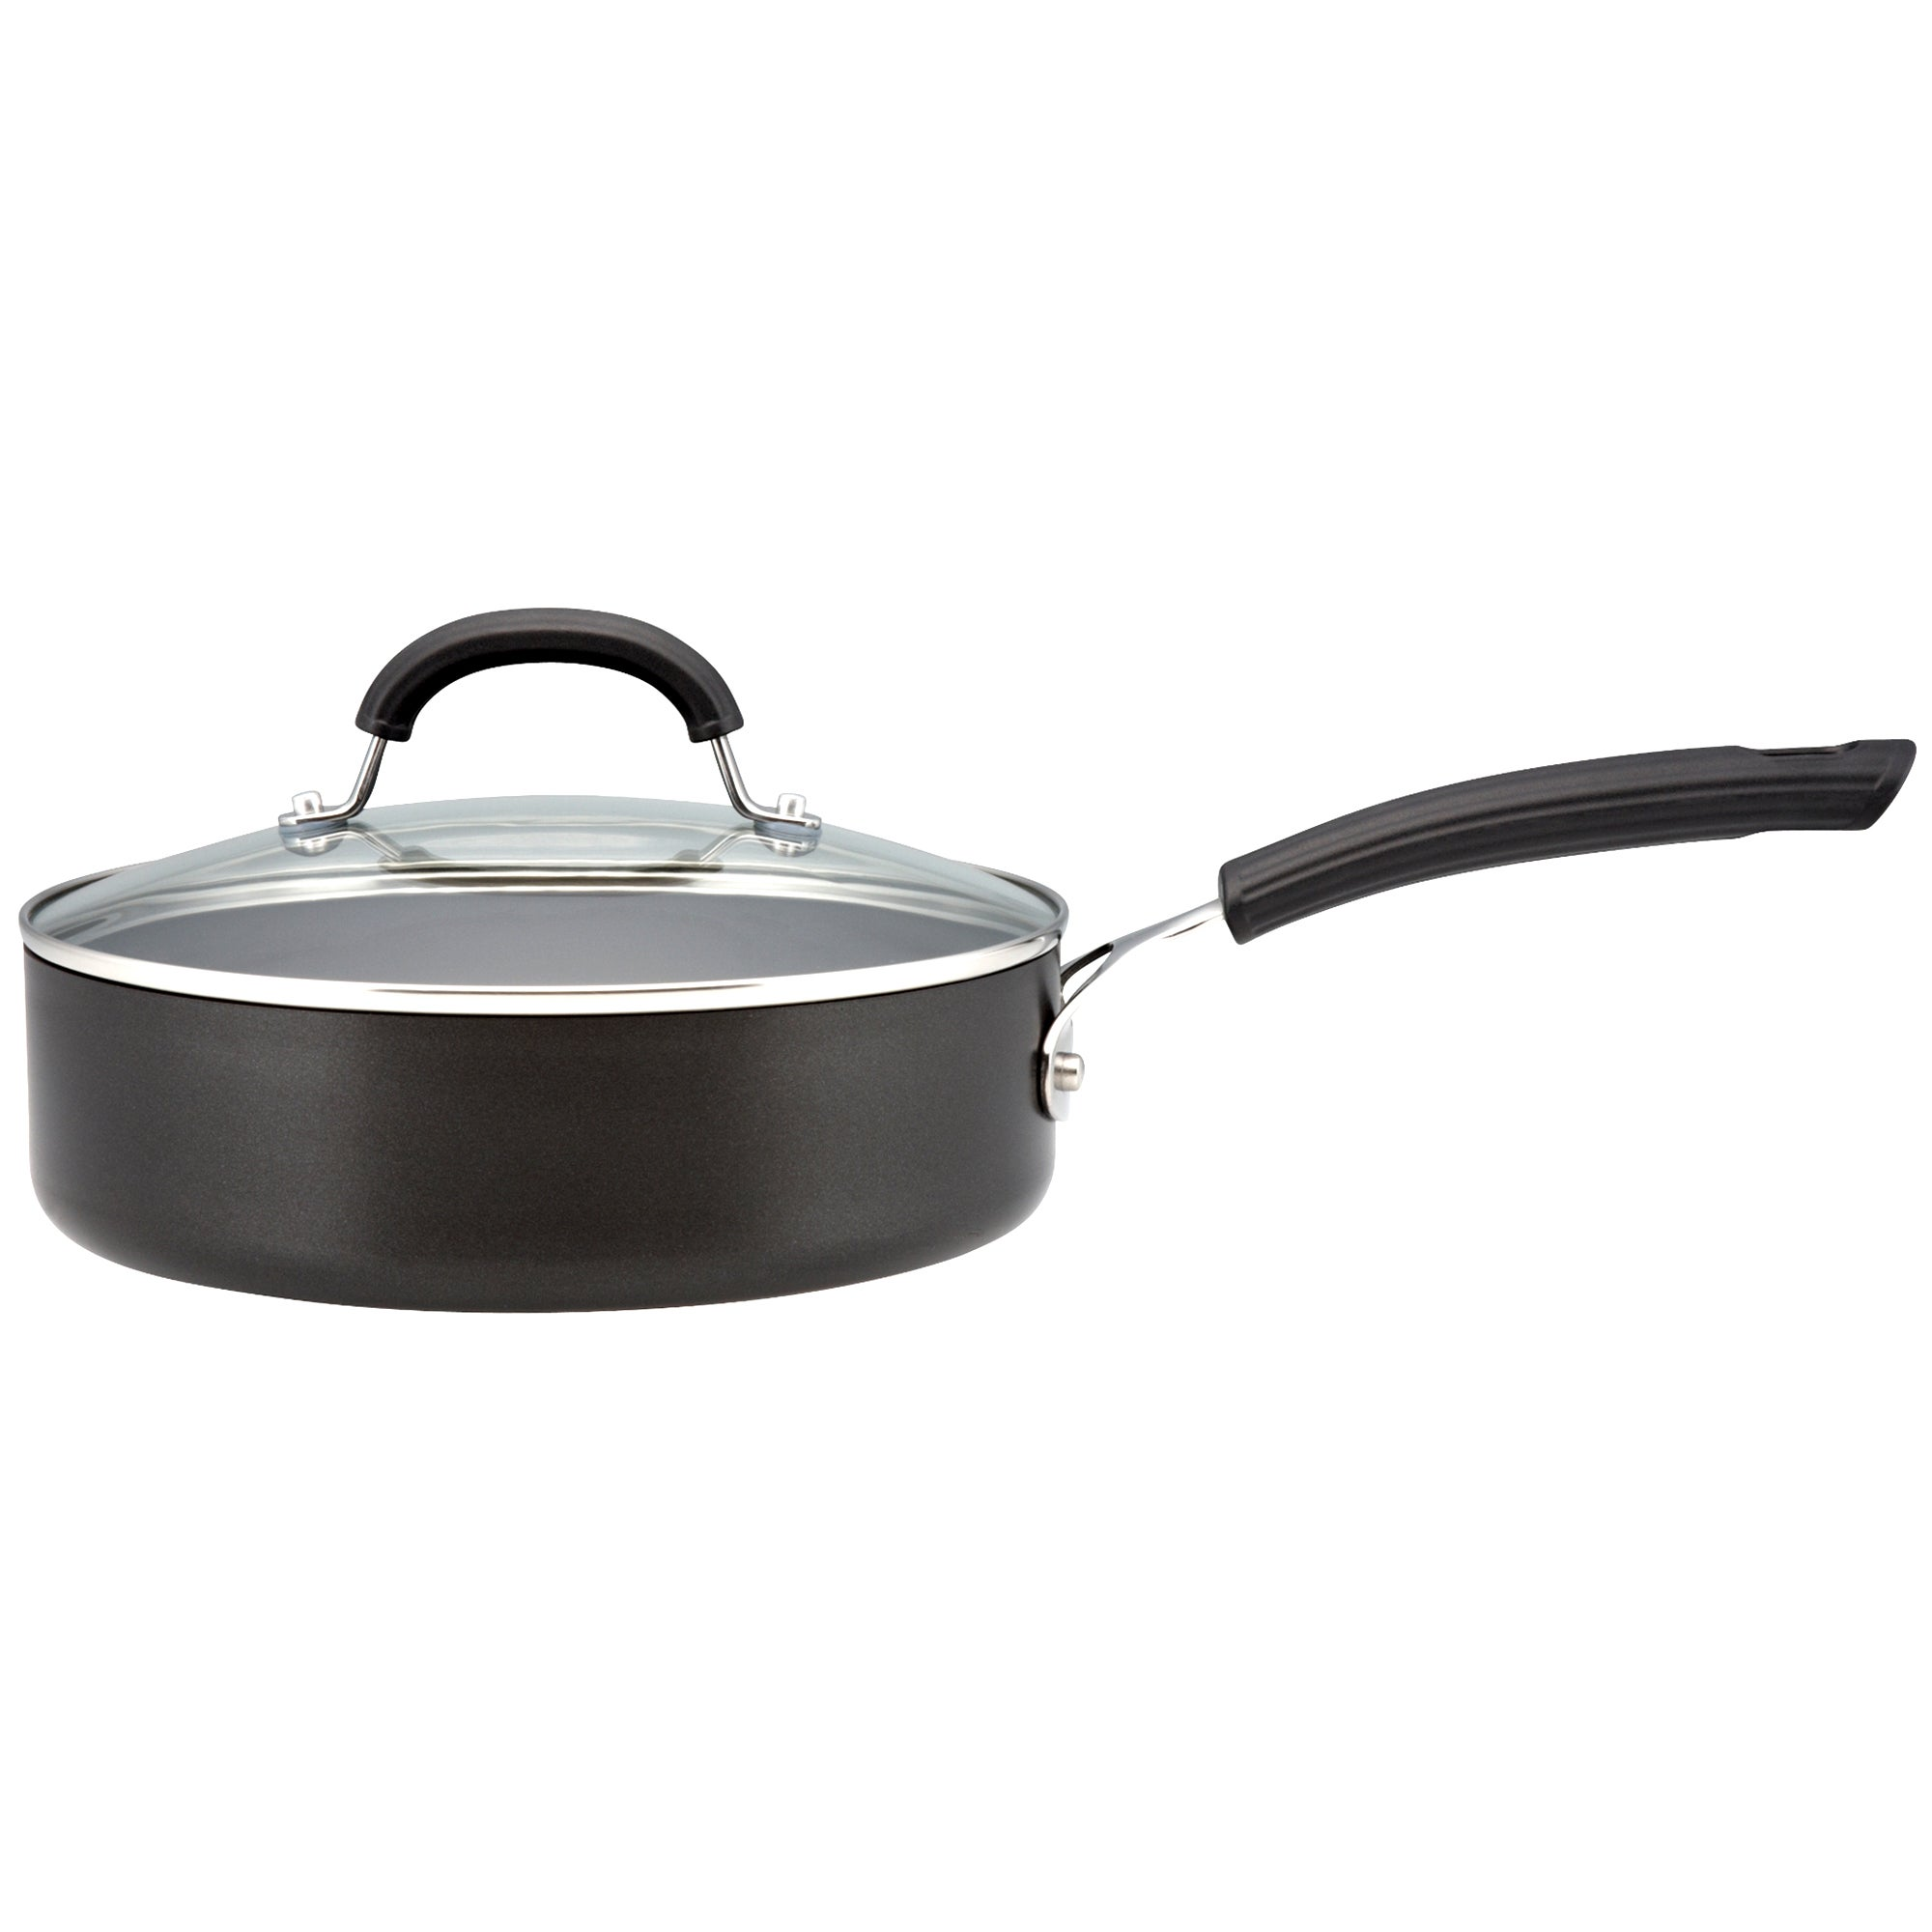 Circulon Origins Hard Anodised Aluminium Saute Pan